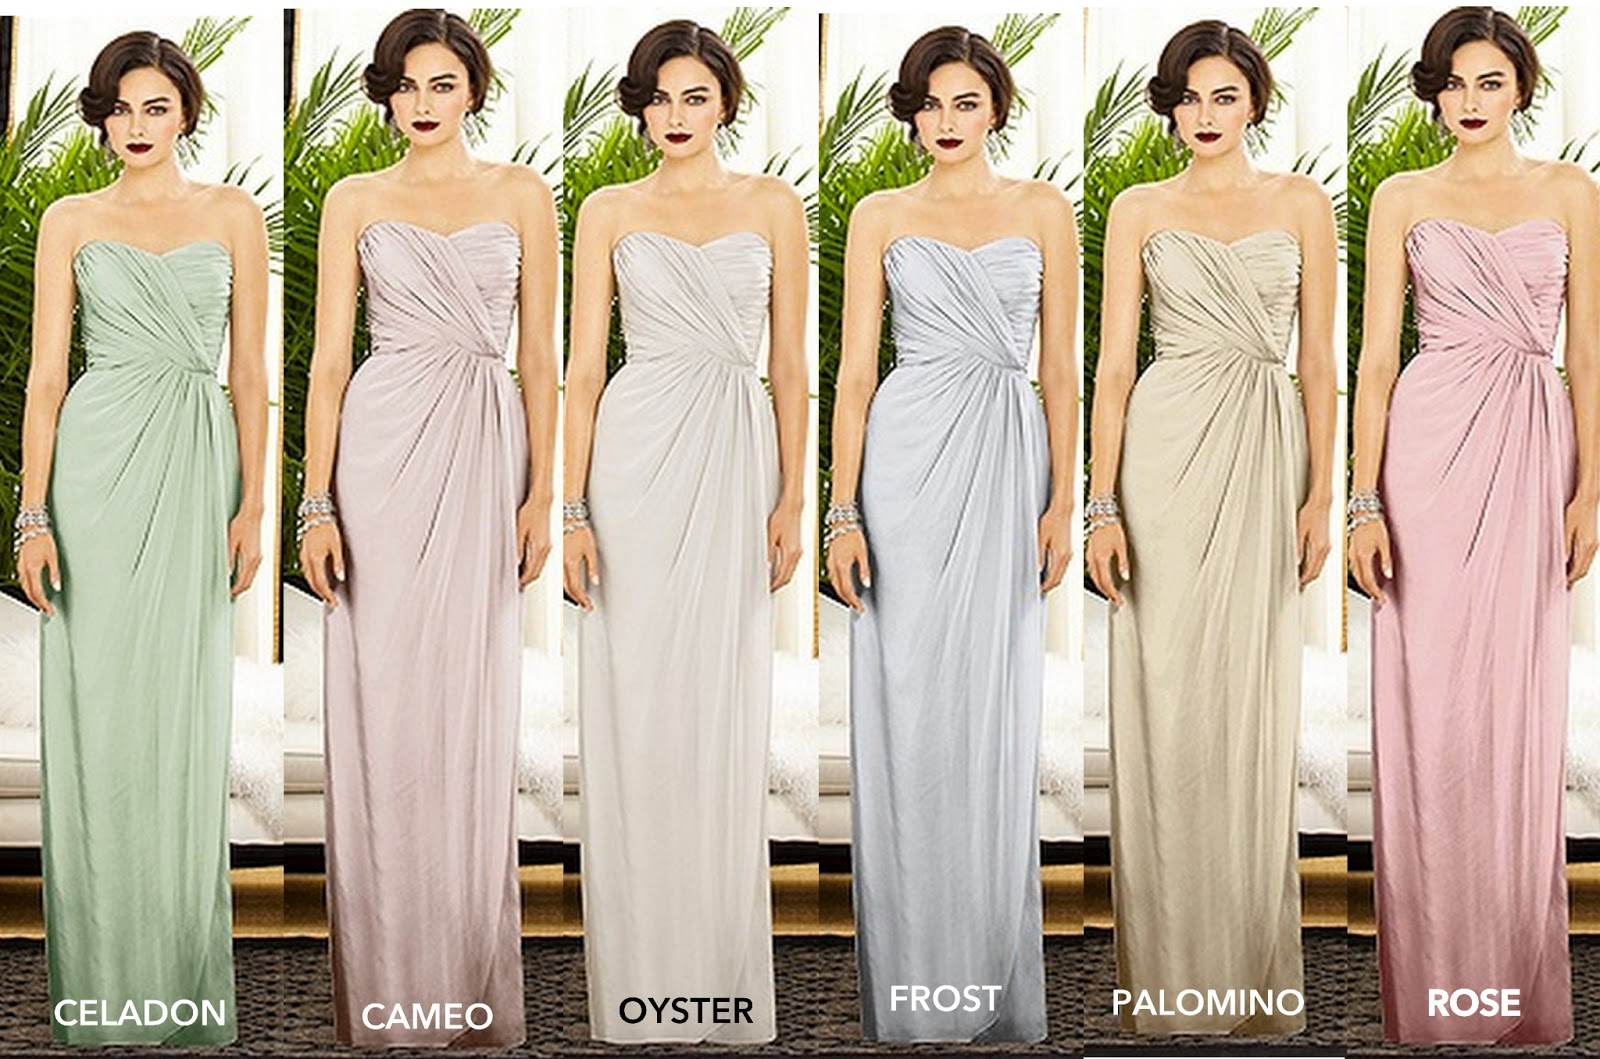 The rose colored aisle april 2013 bridesmaids dresses 50 shades of neutral ombrellifo Image collections